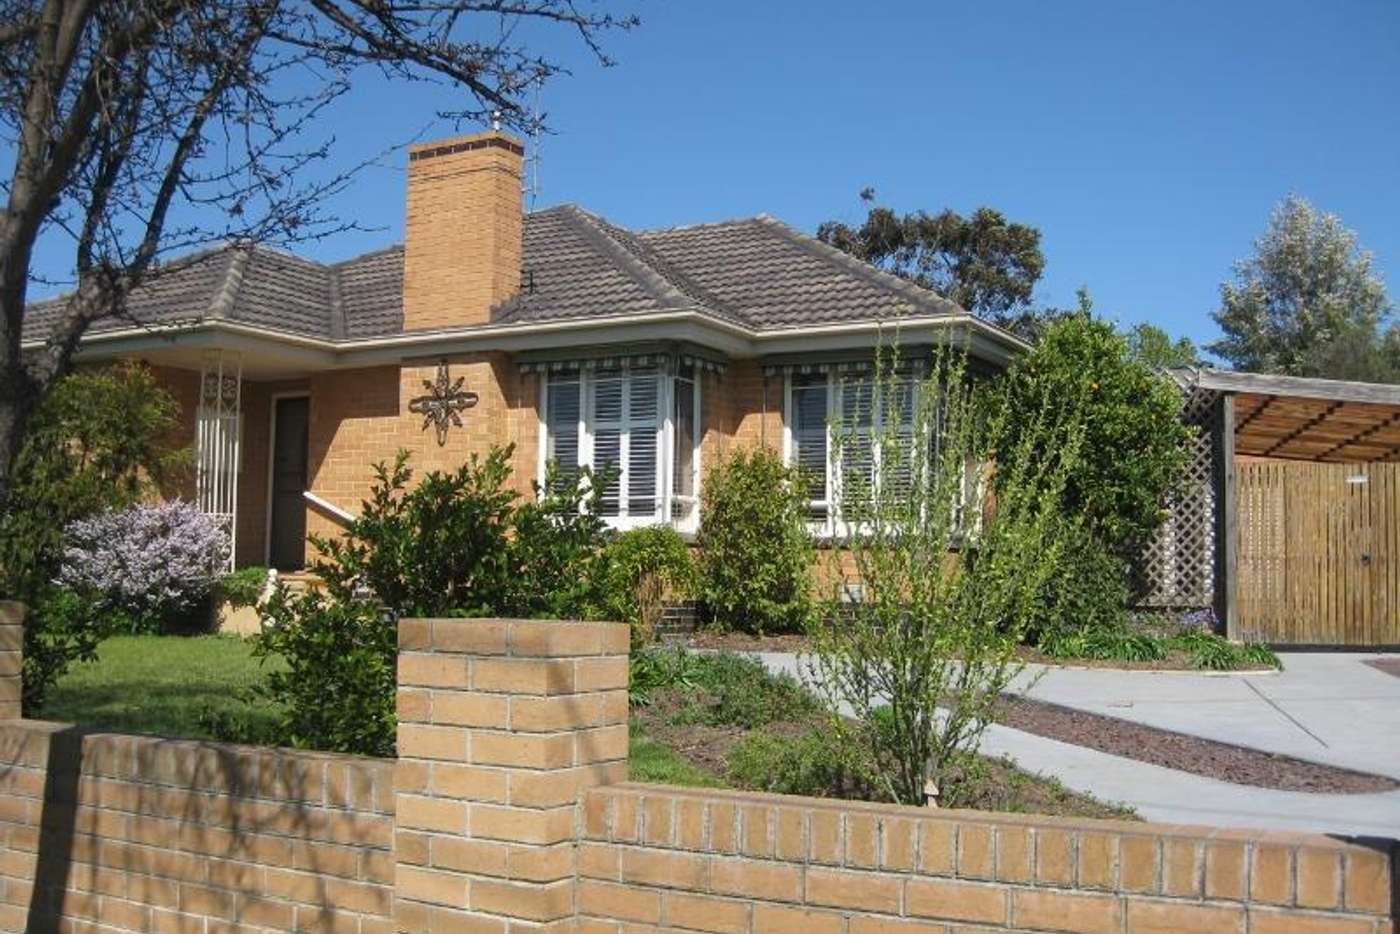 Main view of Homely house listing, 4 Elwers Street, Watsonia North VIC 3087